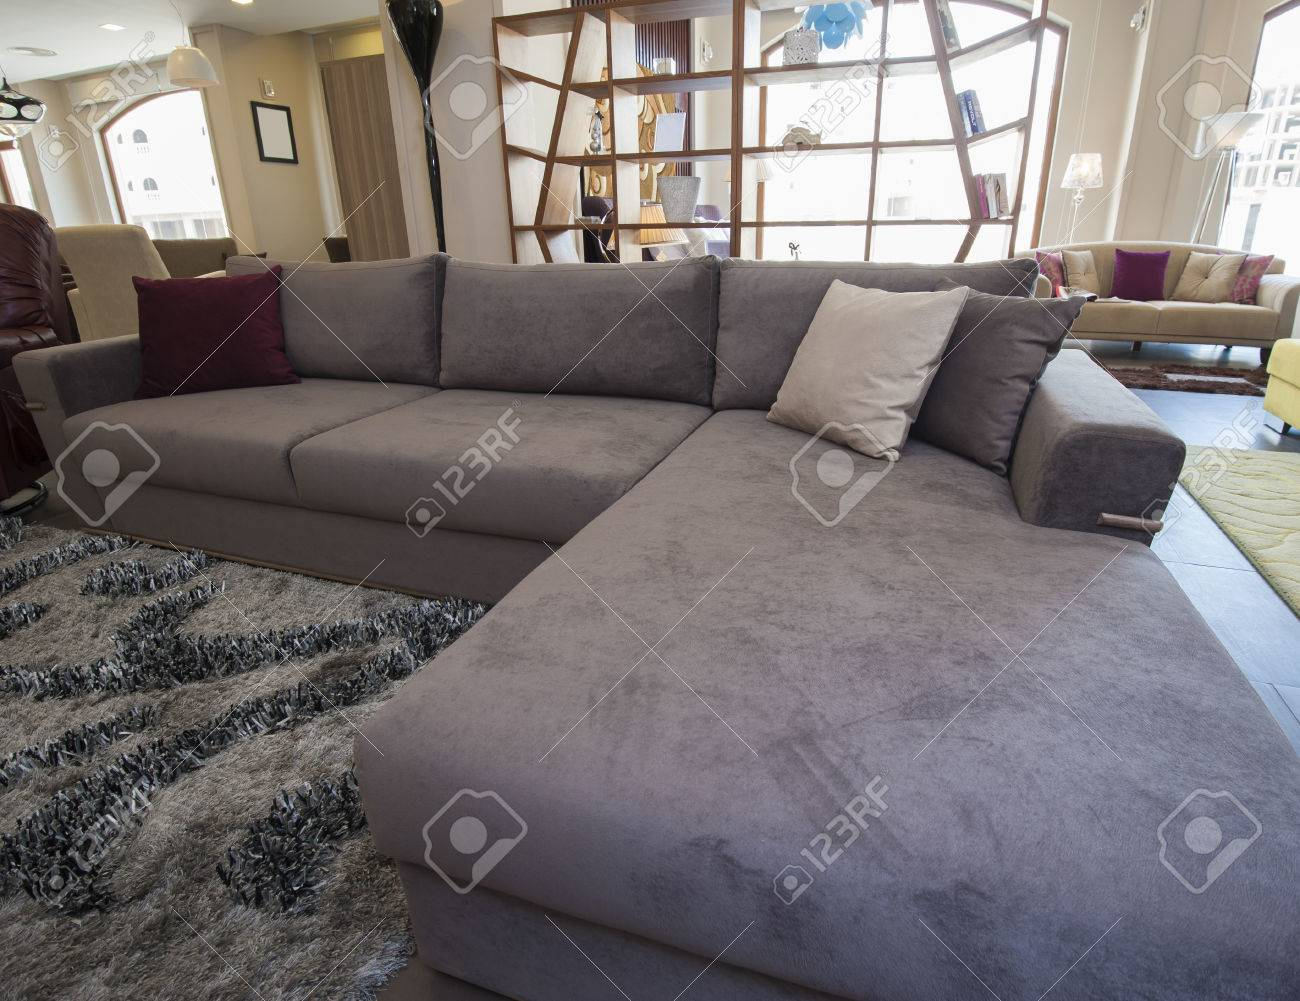 Large L-shaped corner sofa in living room furniture show home